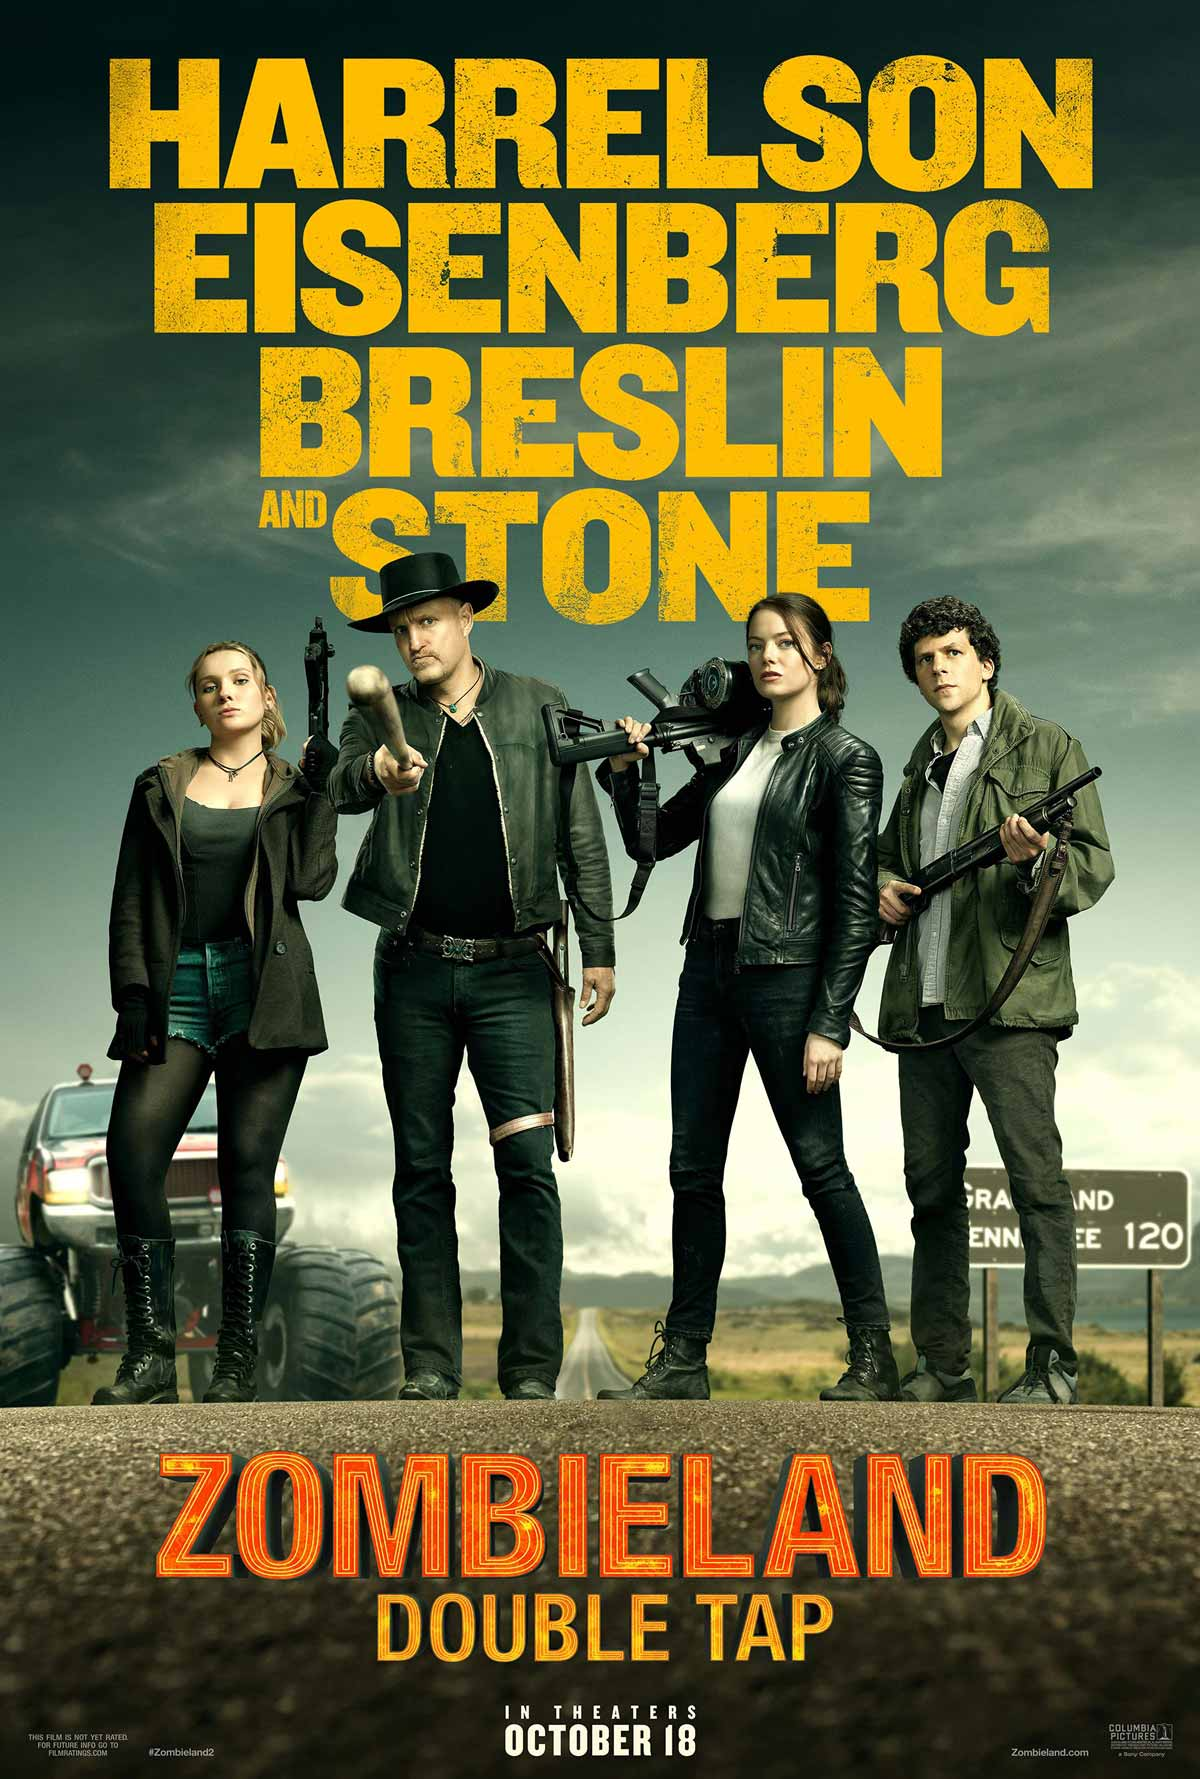 zombieland 2: double tap poster